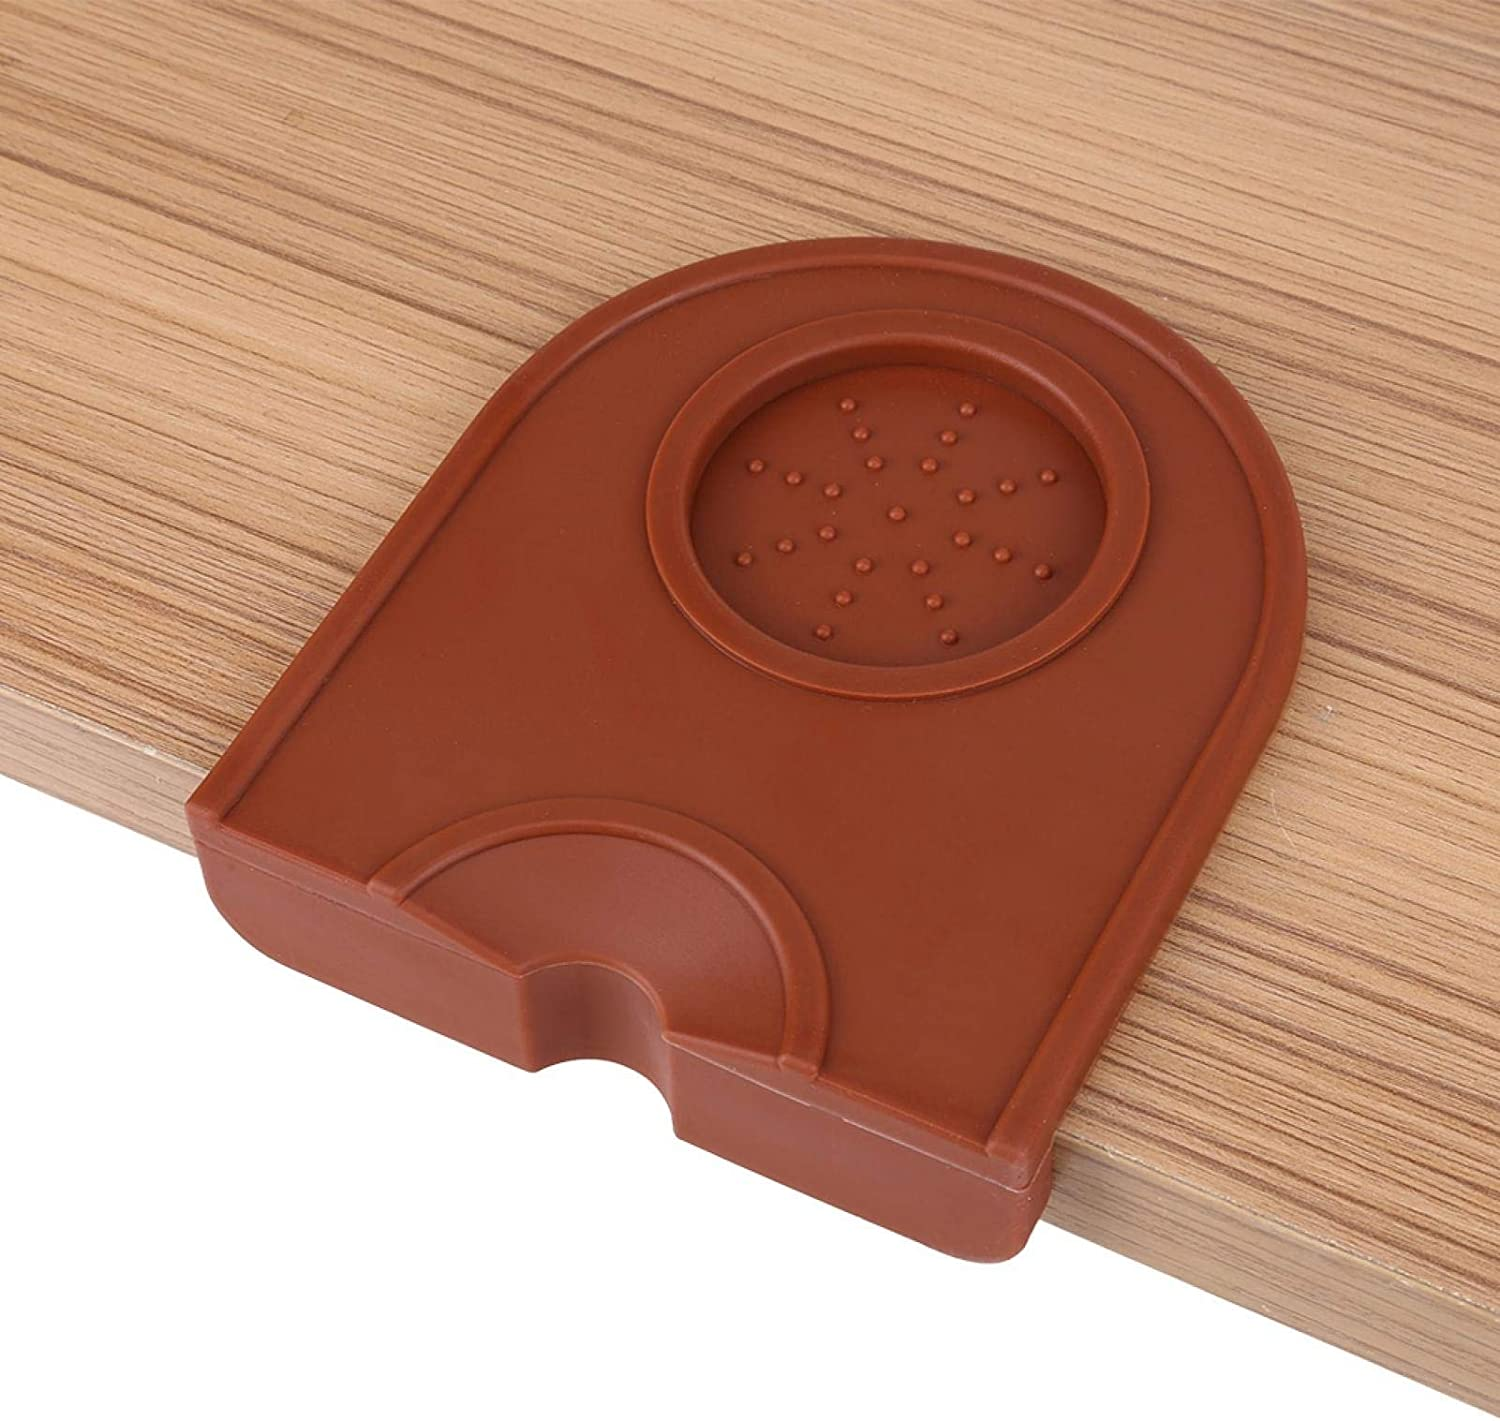 Ranking TOP4 Coffee Grind Silicone Mat Thicken Wear Anti-skid Multi-function depot